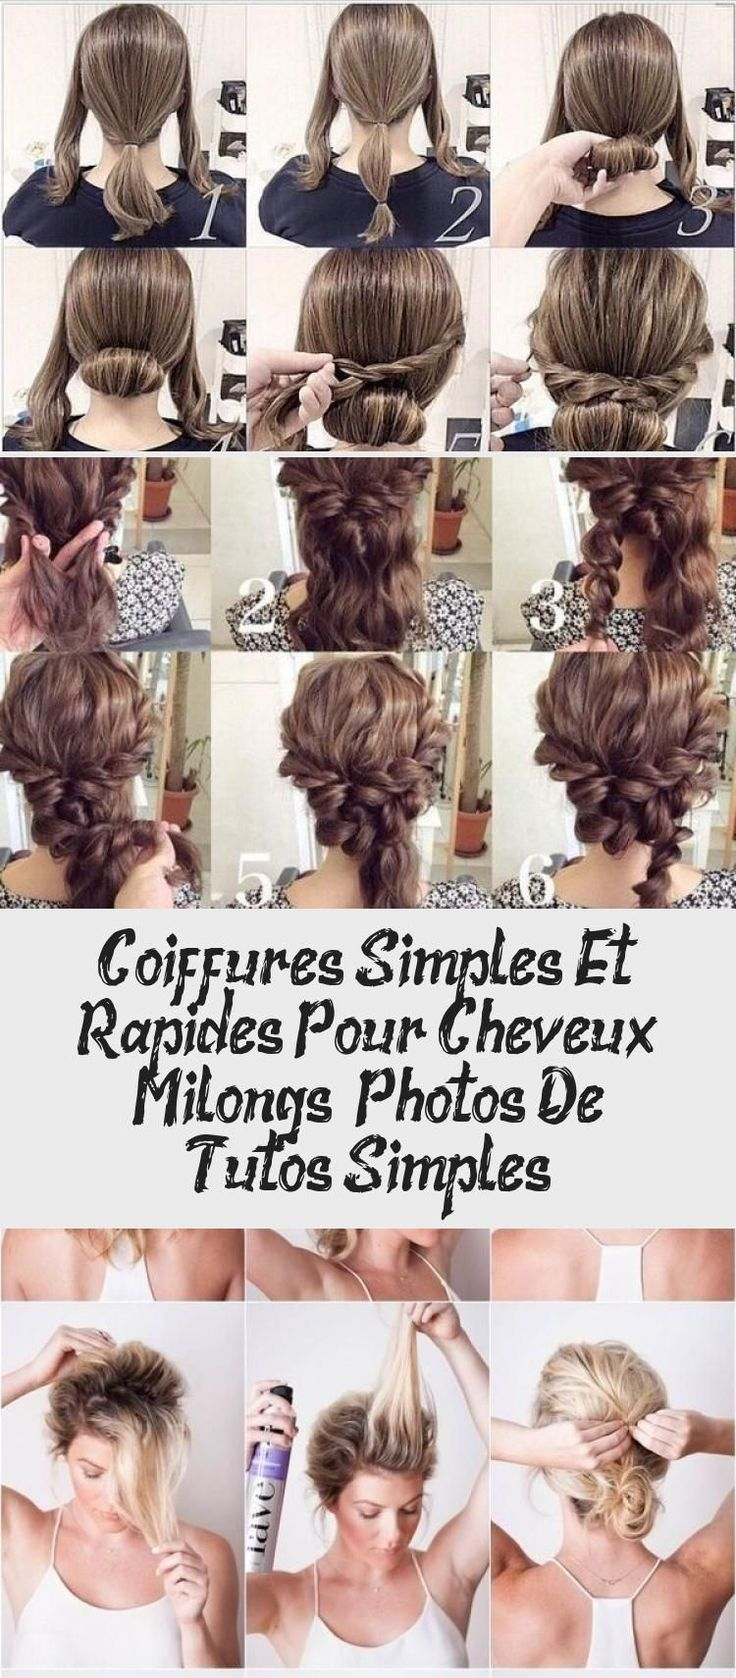 Simple and quick hairstyles for medium length hair photos ...